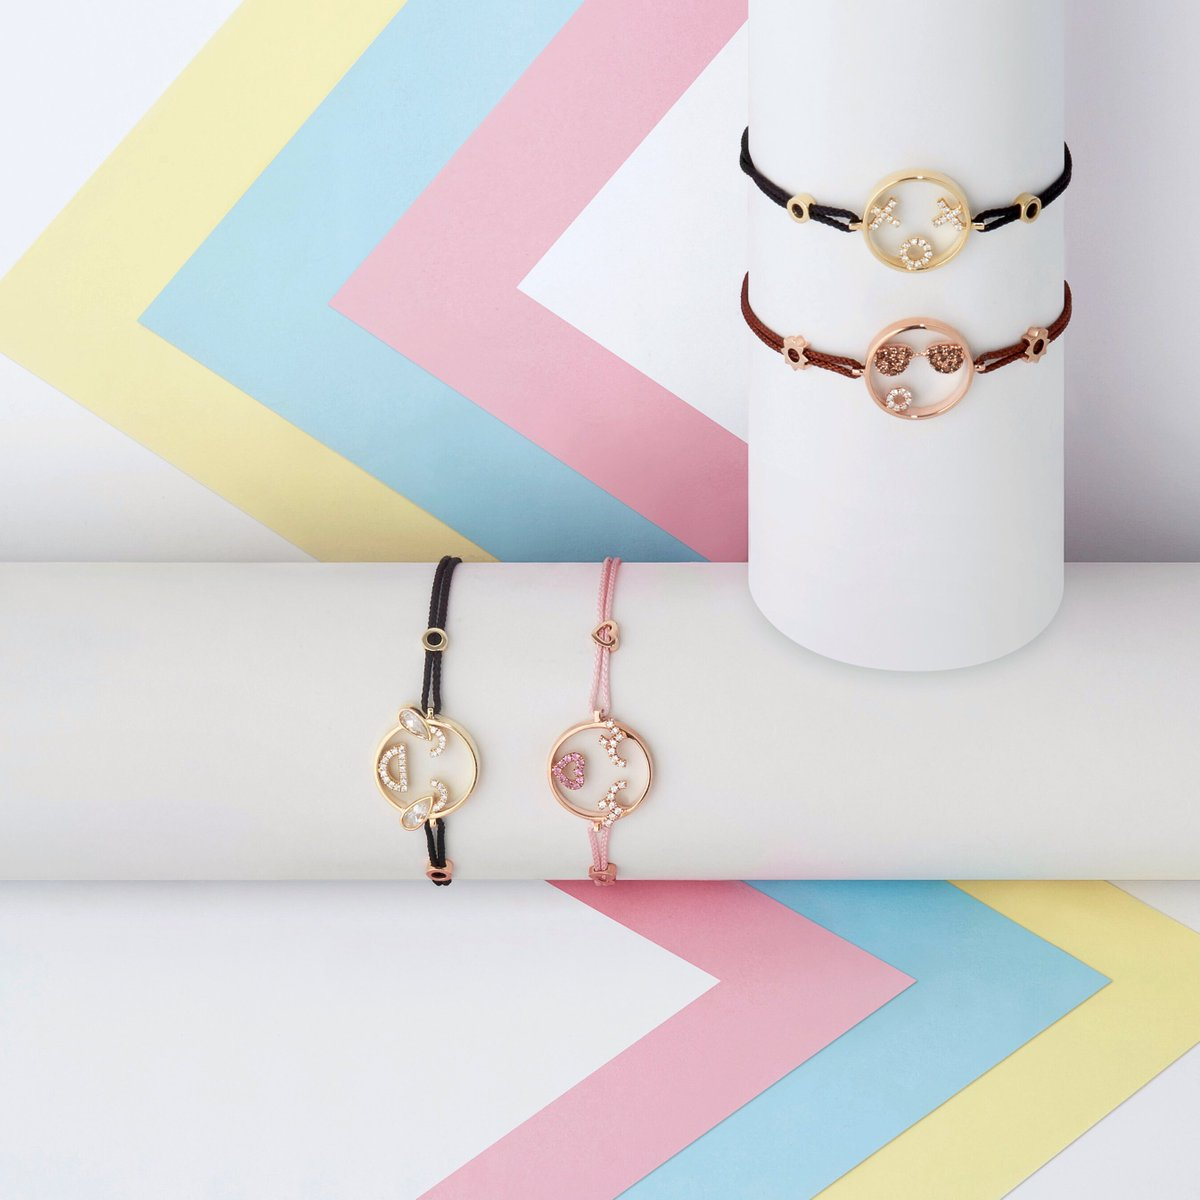 Crush worthy bracelets! Which matches your personality most? #moyen #bracelets #takeyourpick<br>http://pic.twitter.com/b966Aj7lP6